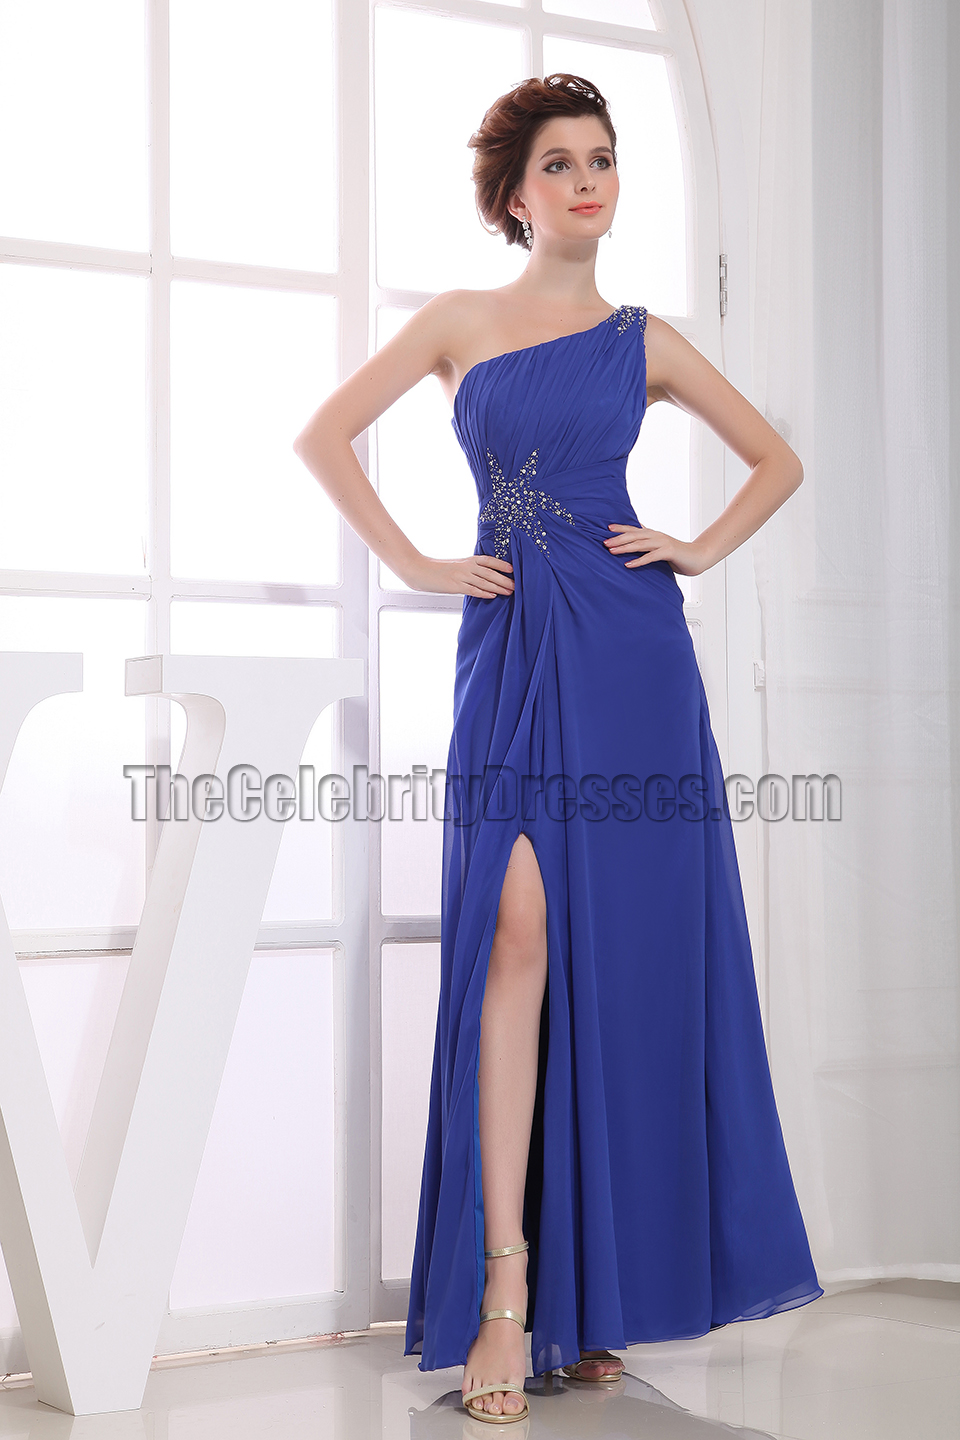 Evening dresses celebrity styles in mentor